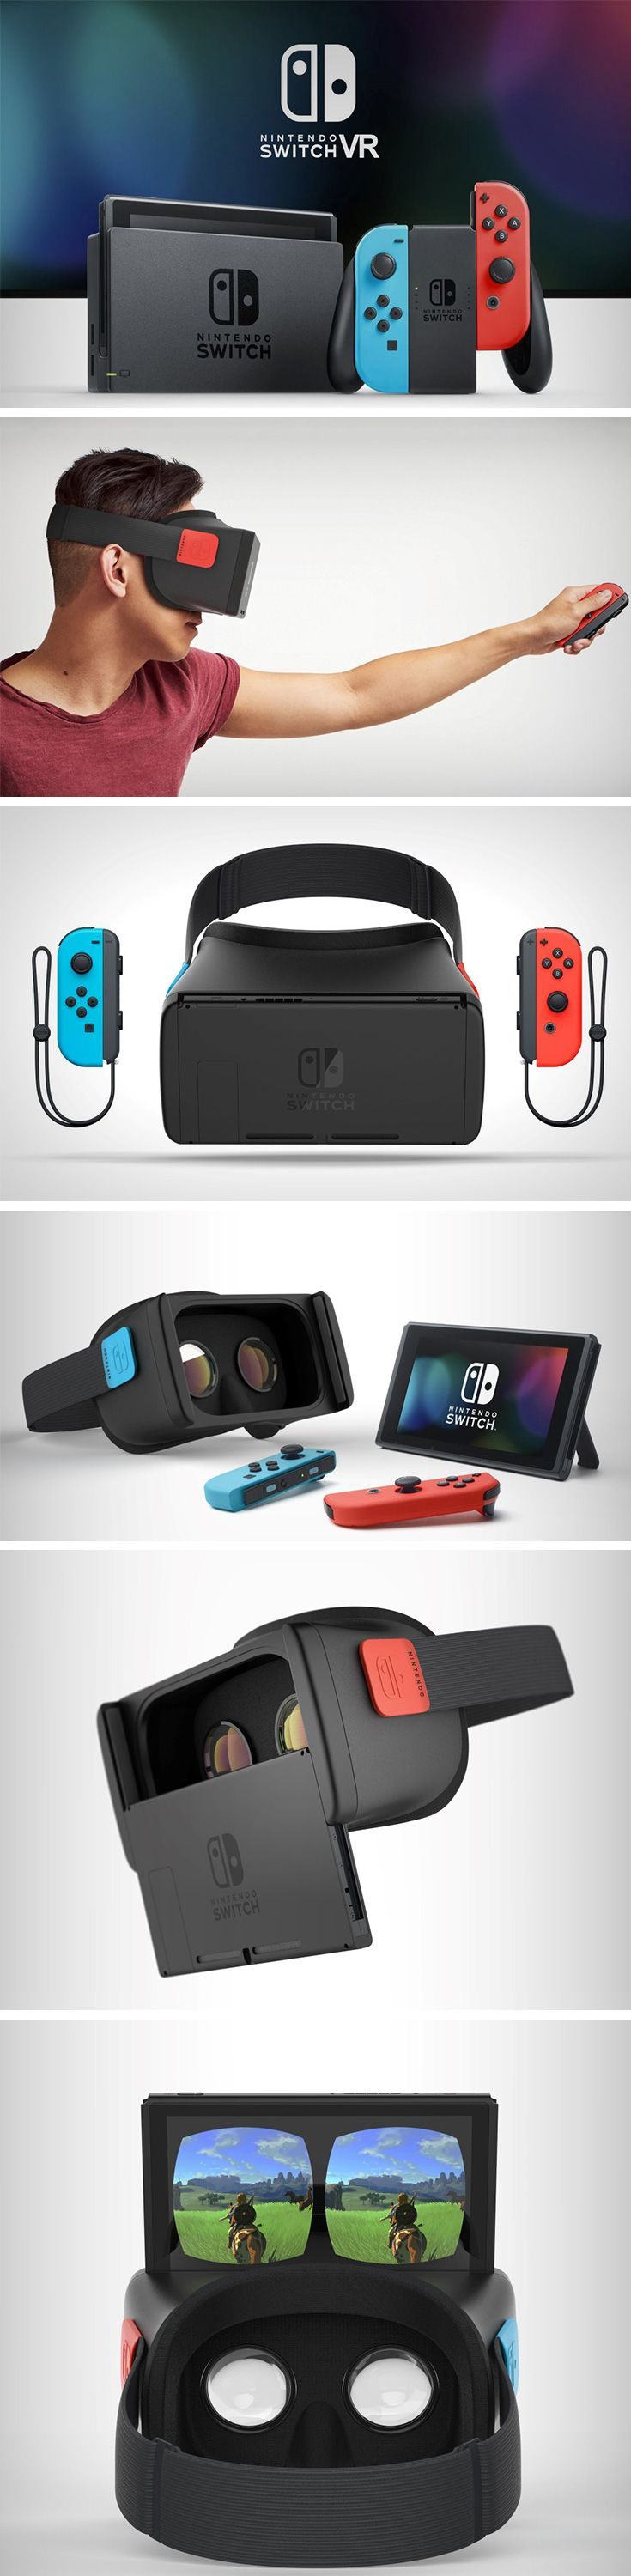 The Nintendo Switch VR needs to be a reality! it's perfectly built to fit well into the VR case, and comes with detachable controllers, making it perfect for its use.